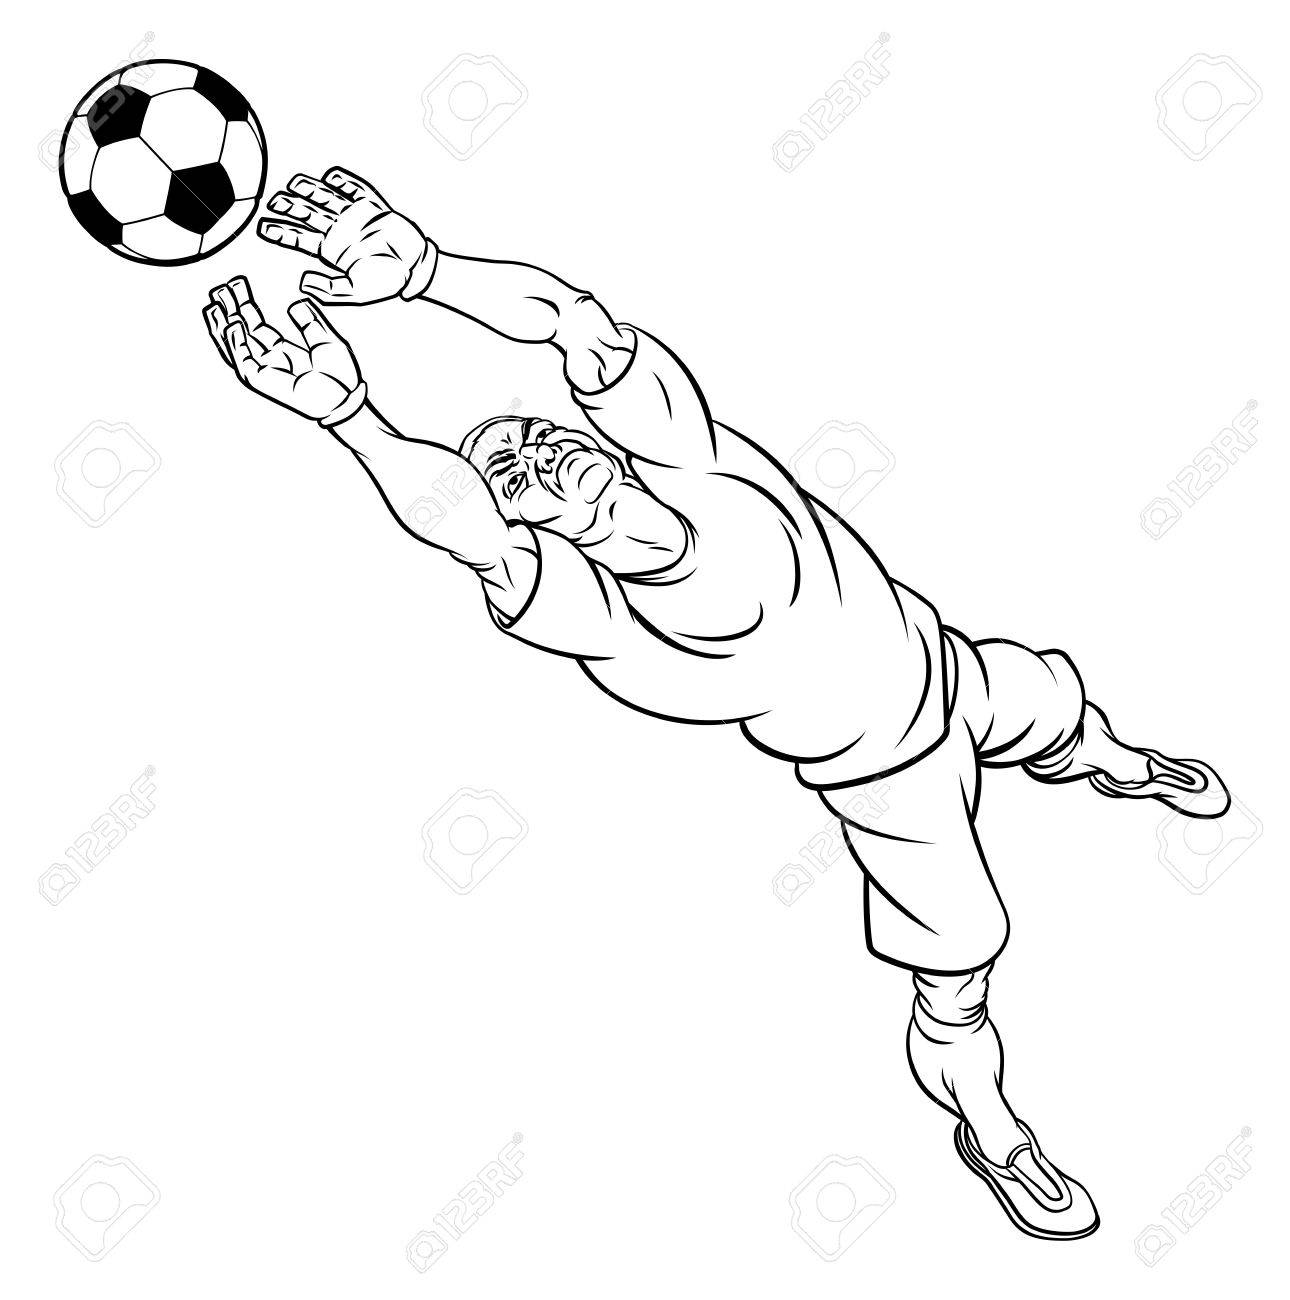 1290x1300 A Football Soccer Player Goal Keeper Cartoon Character Catching